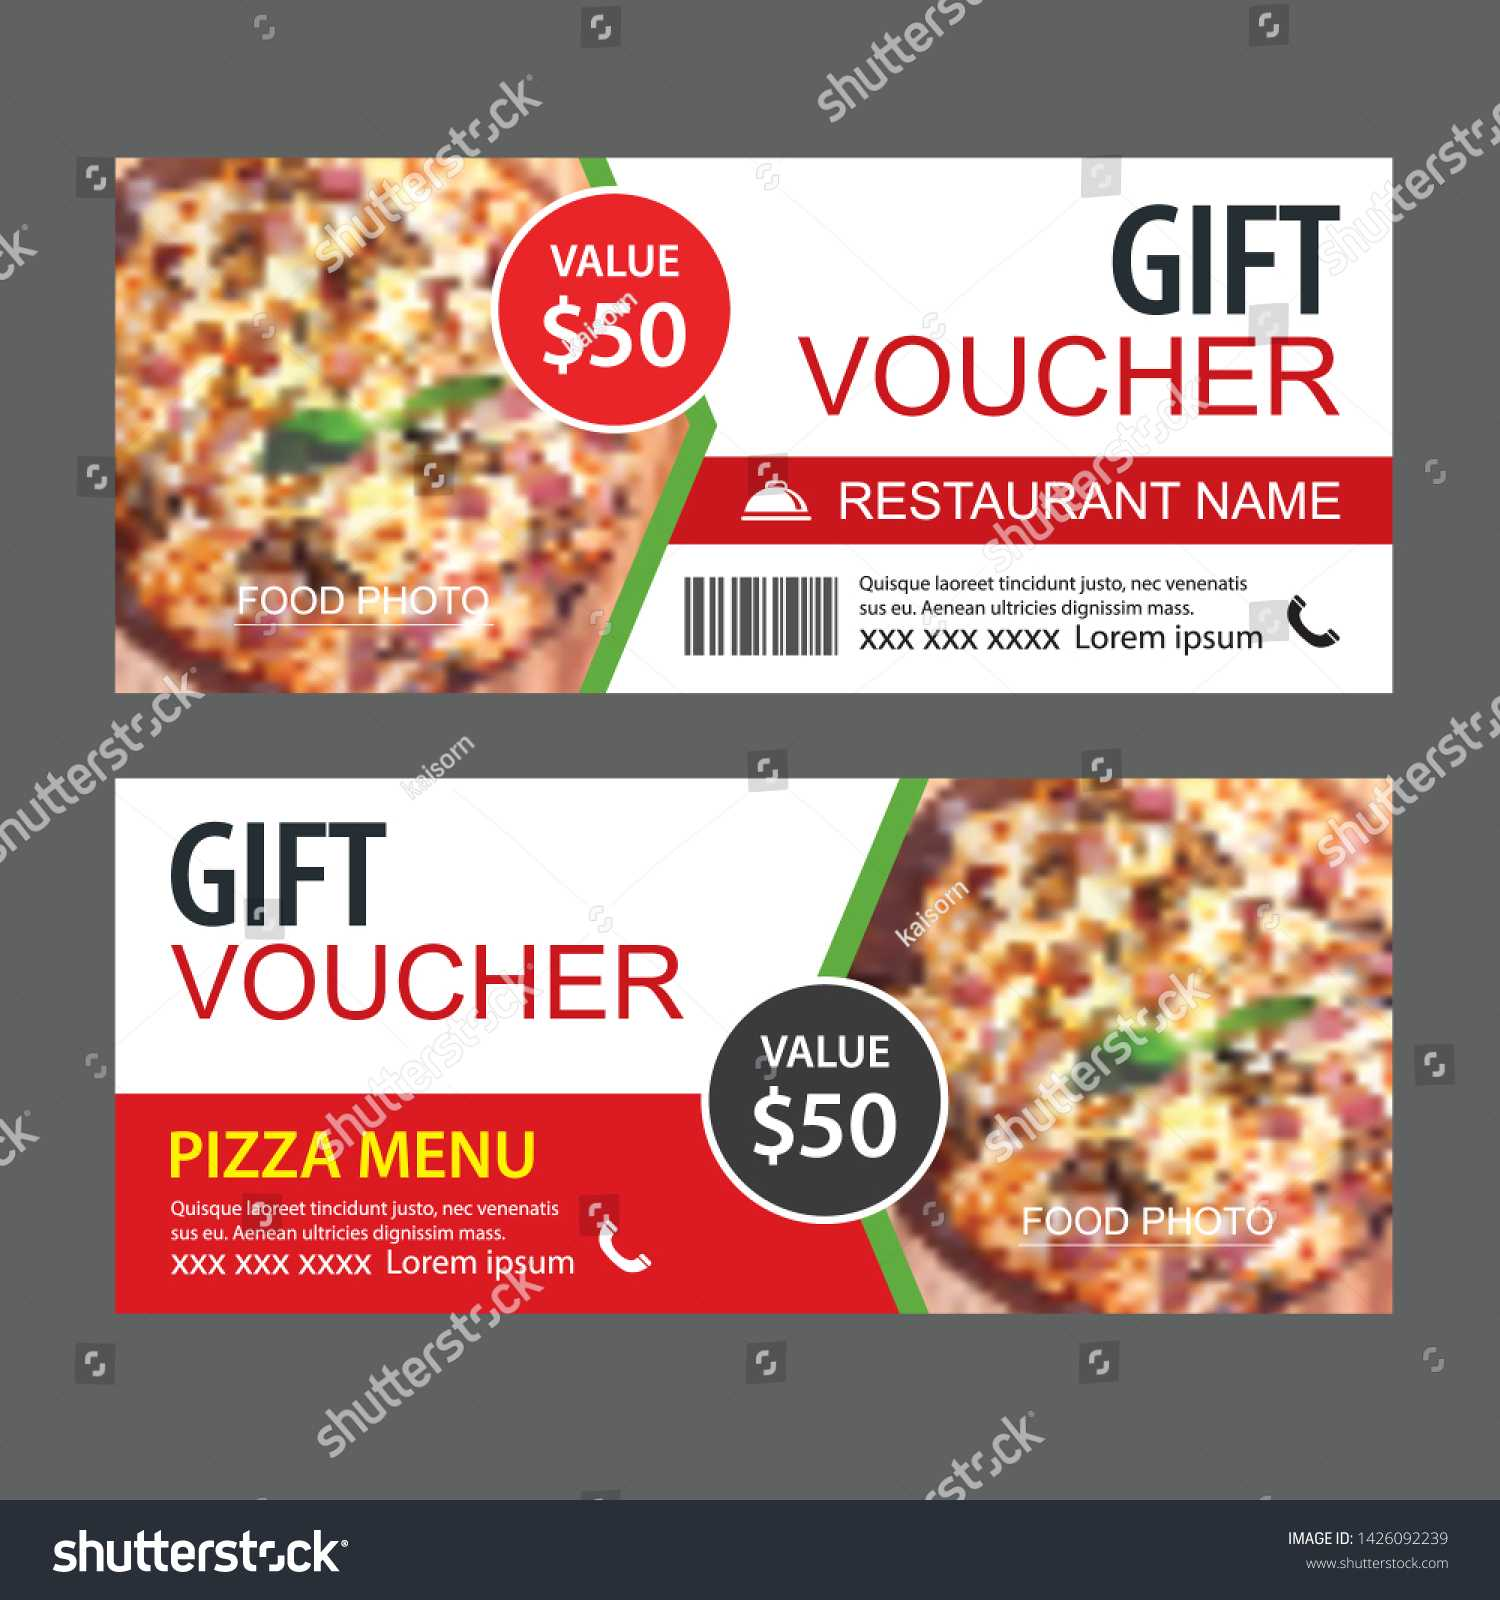 Стоковая Векторная Графика «Discount Gift Voucher Fast Food For Pizza Gift Certificate Template